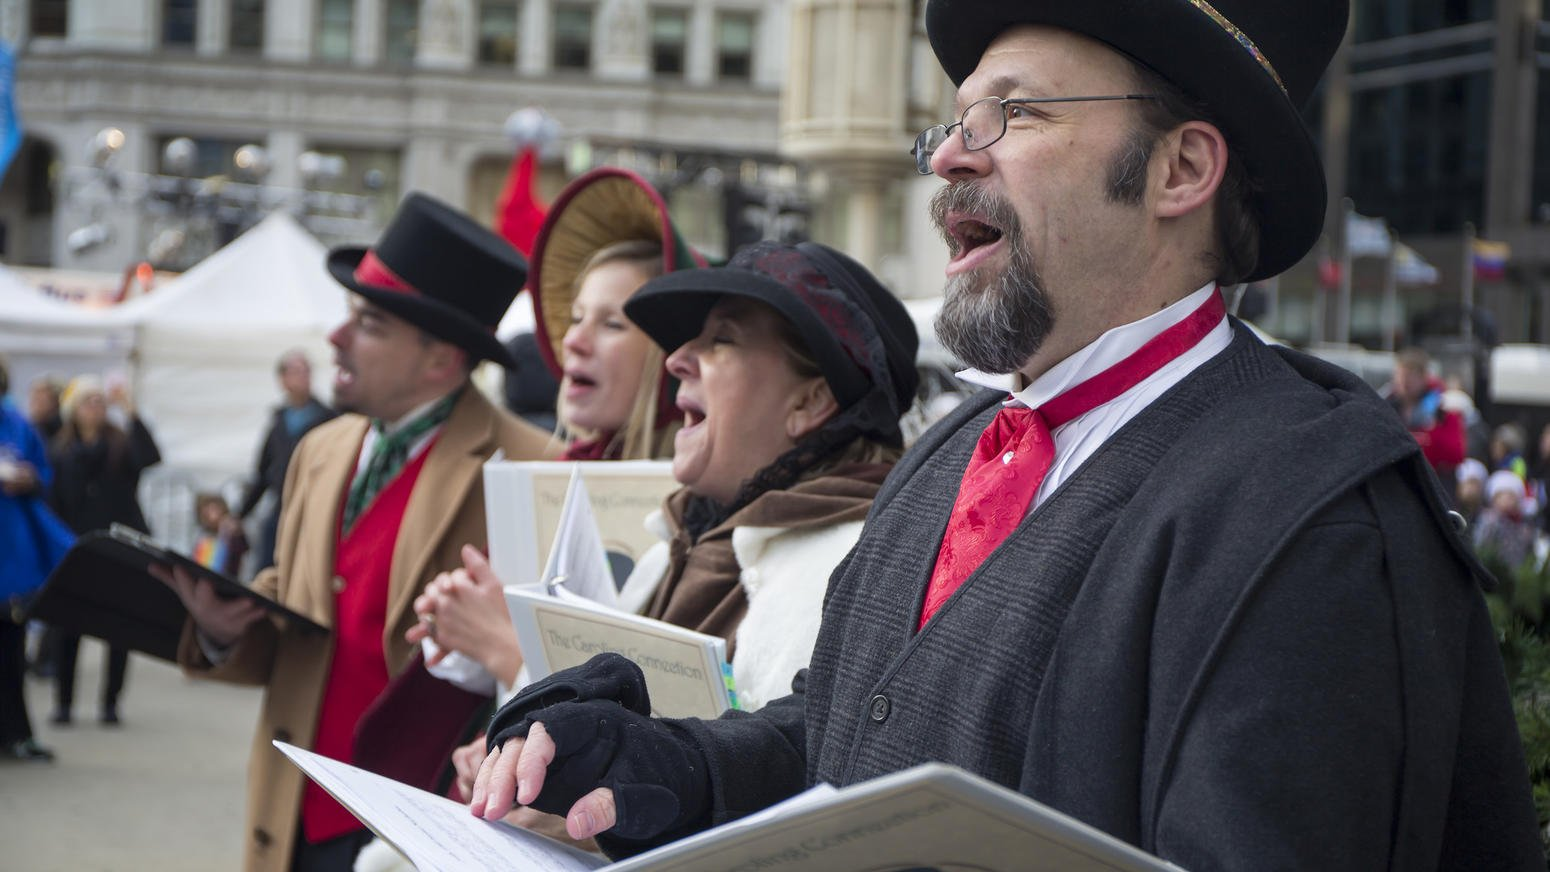 The Caroling Connection as seen in the Chicago Tribune